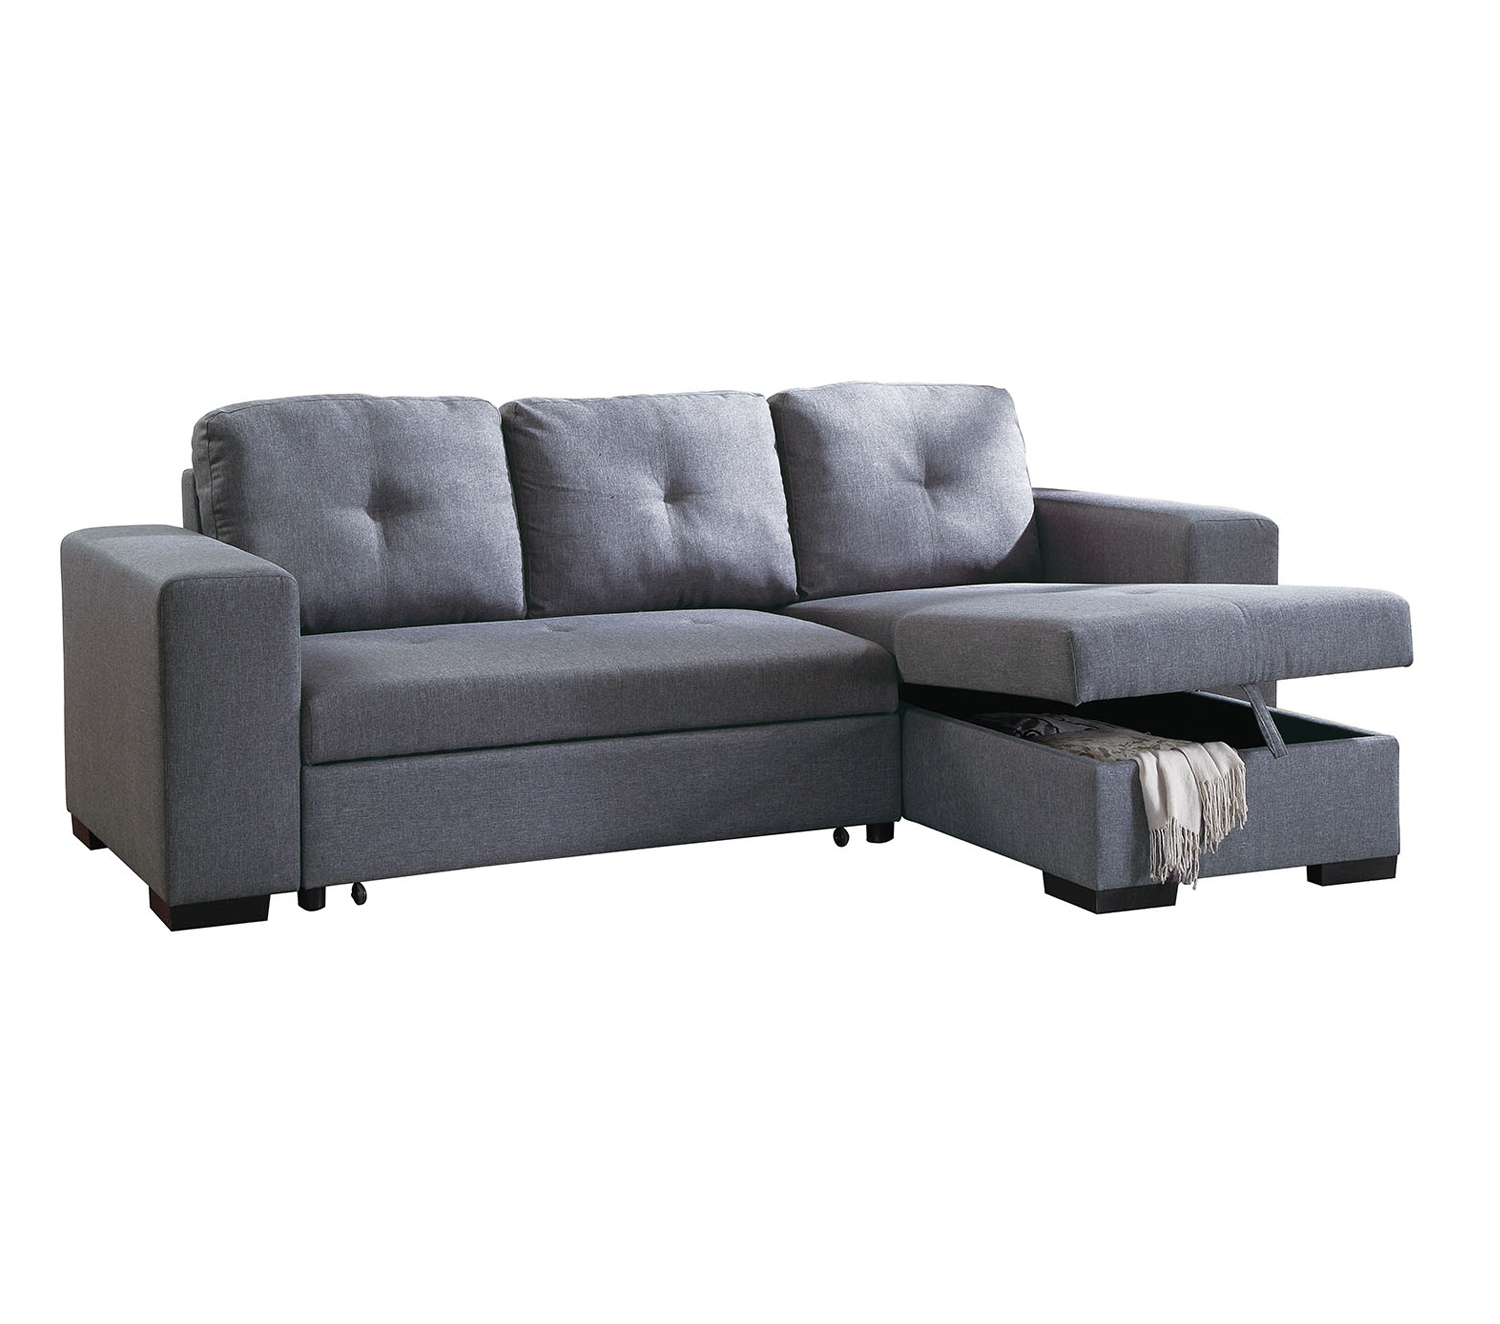 Bobkona Forbes Linen-like Polyfabric 2-Piece Reversible Sectional with Pull-Out Bed and Compartment in Blue Grey by Poundex